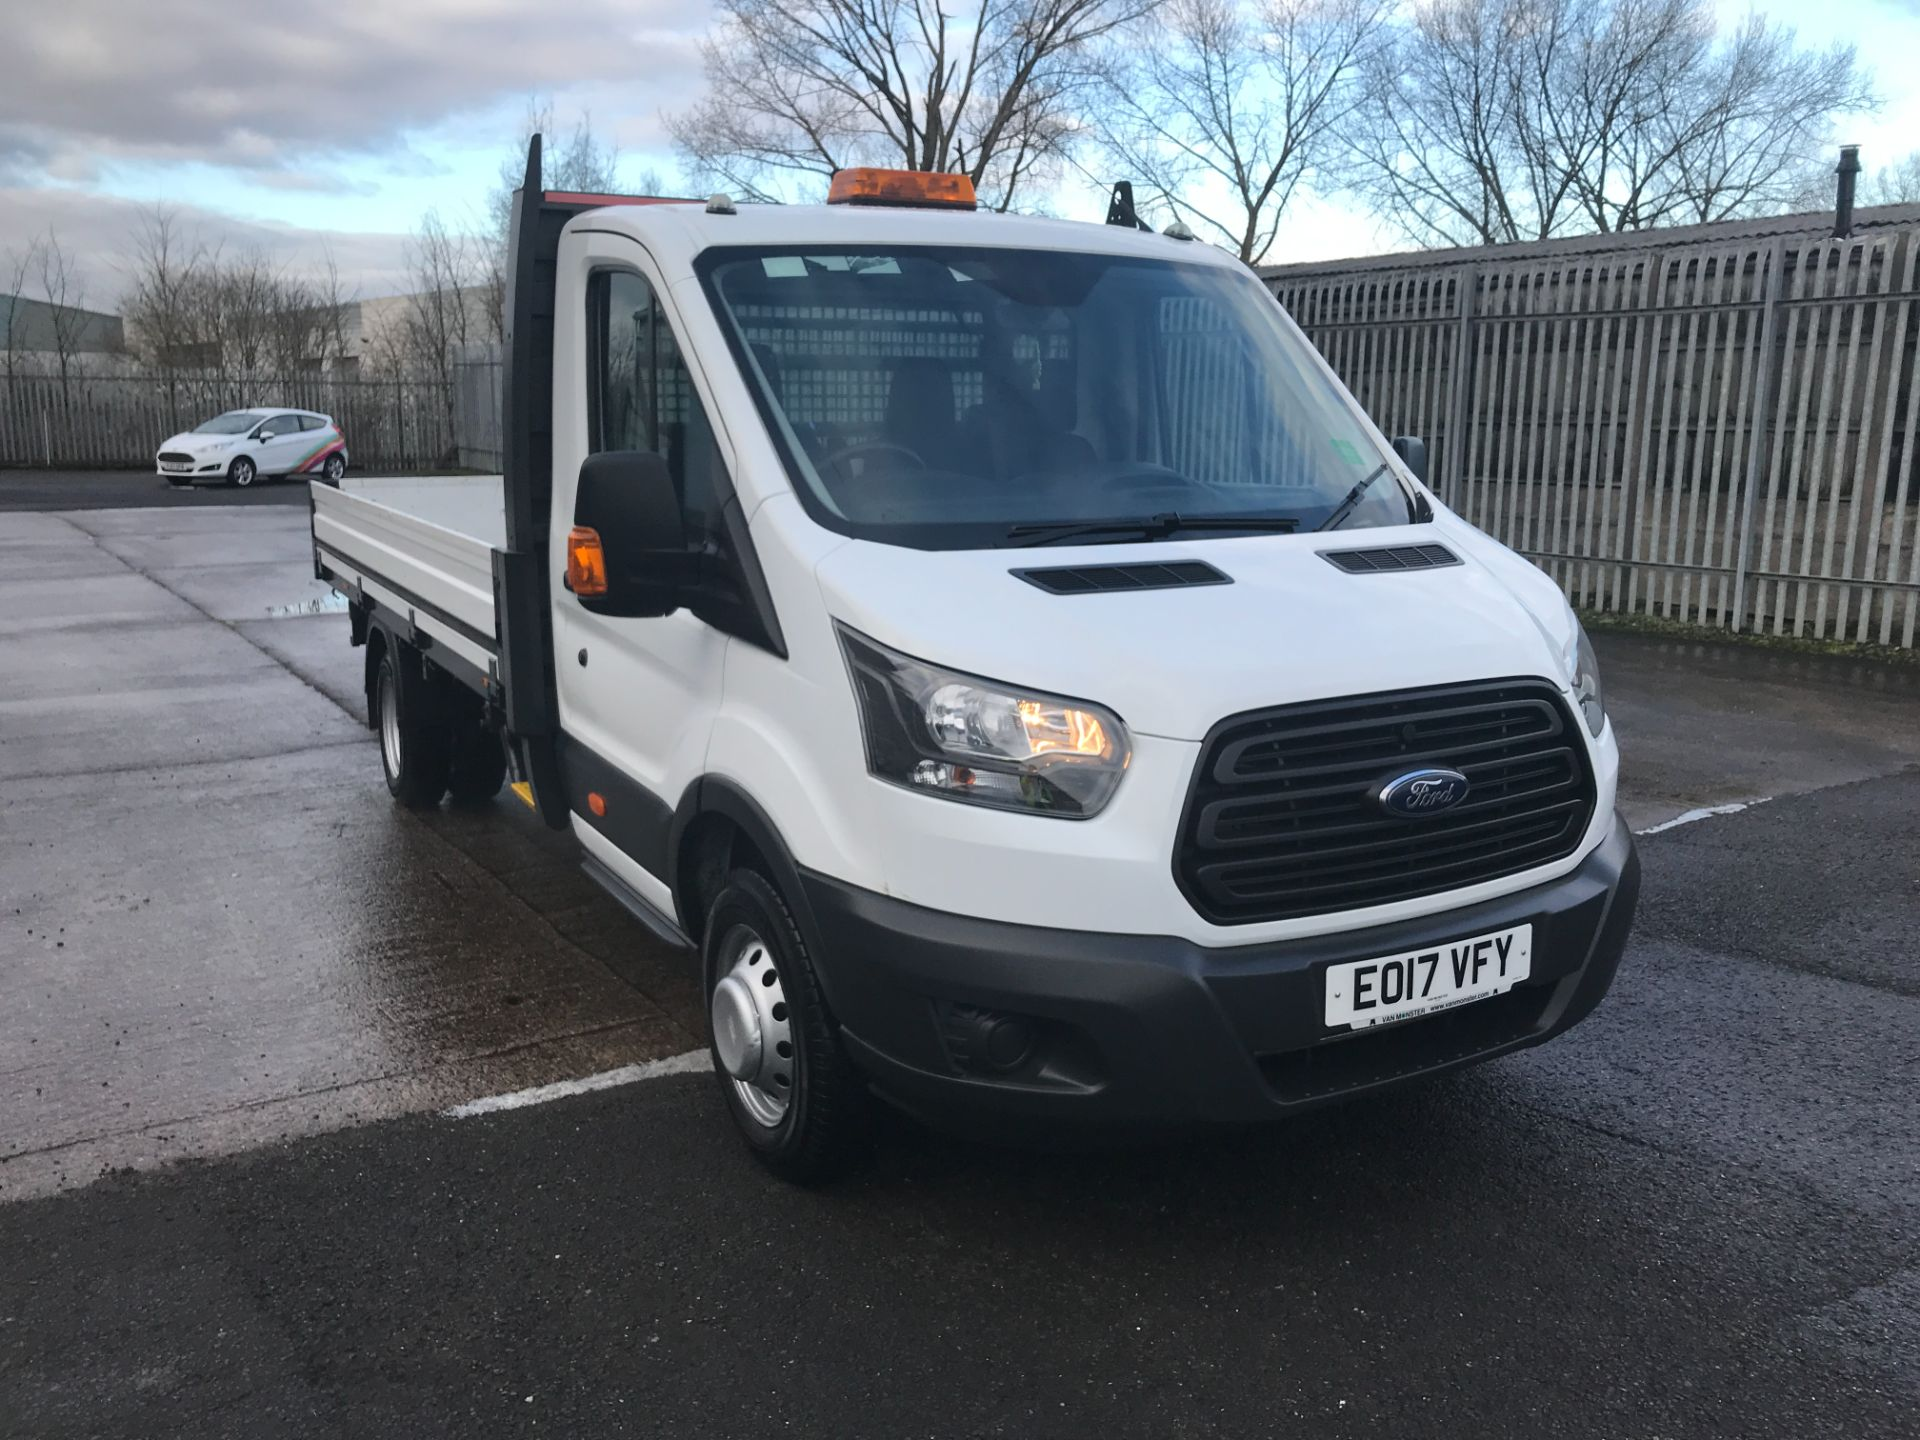 2017 Ford Transit T350 13FT SINGLE CAB DROPSIDE 130PS EURO 6 (EO17VFY) Image 1